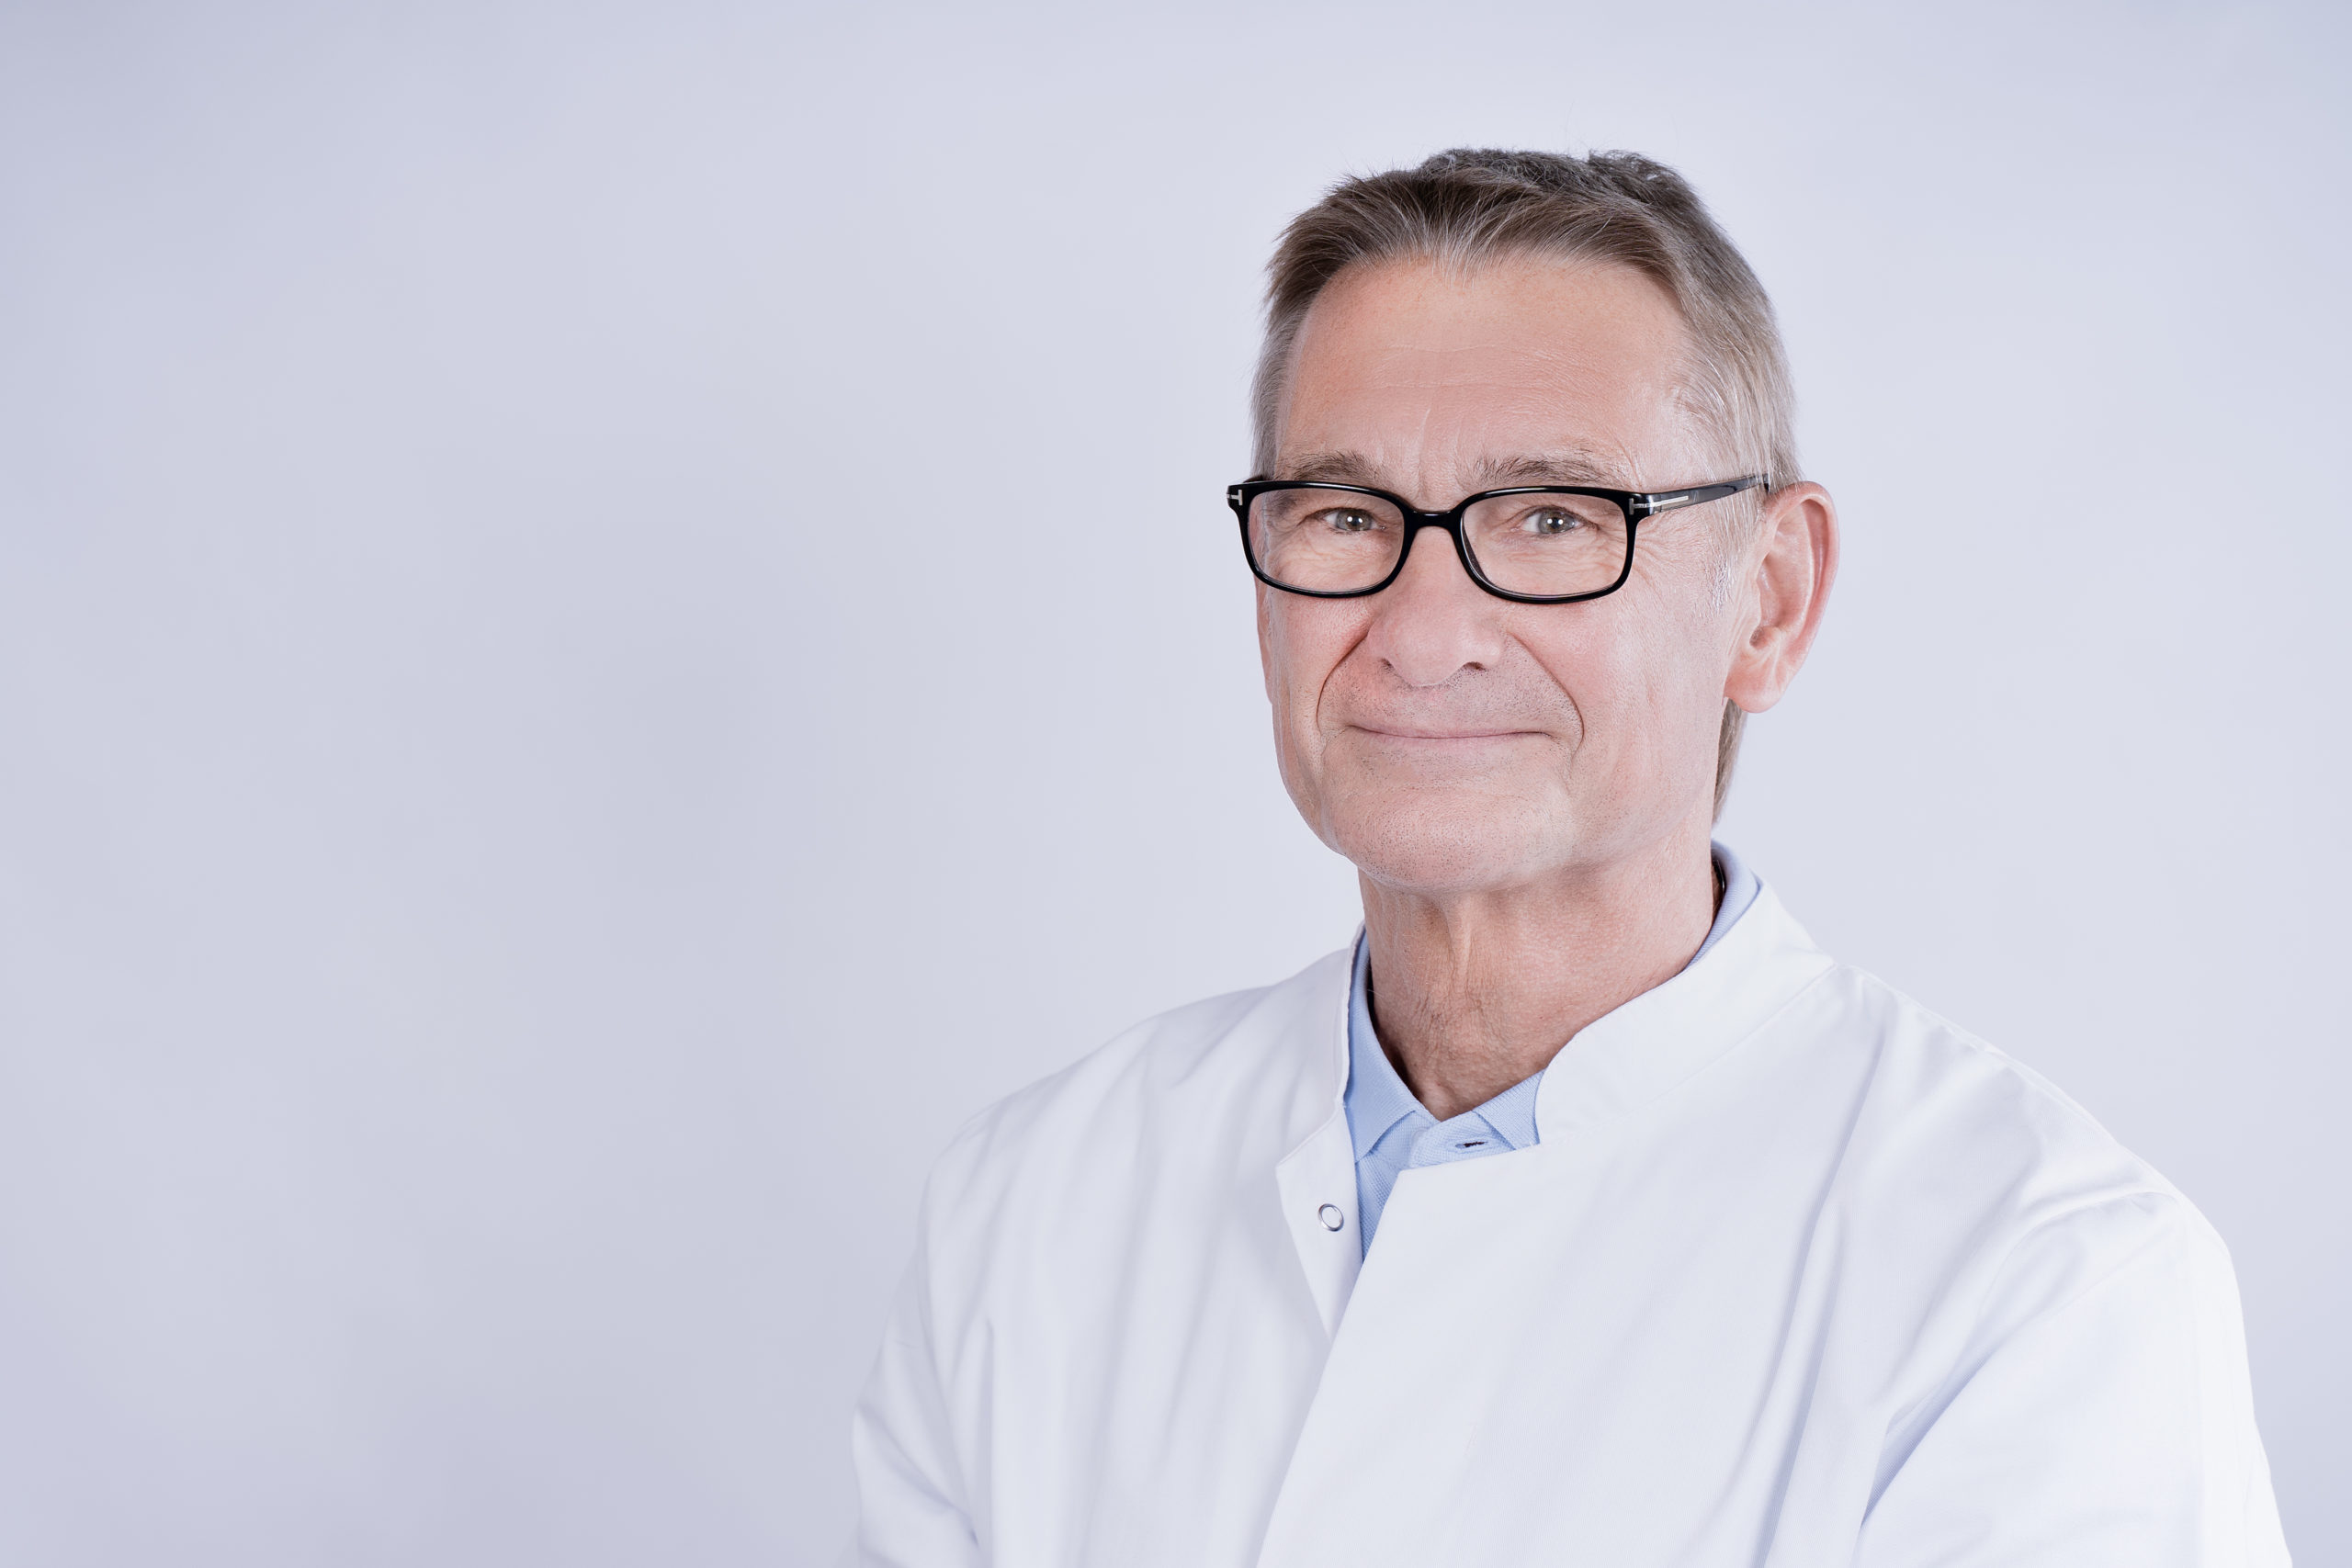 Prof Dr. med. Rainer Willy Hauck